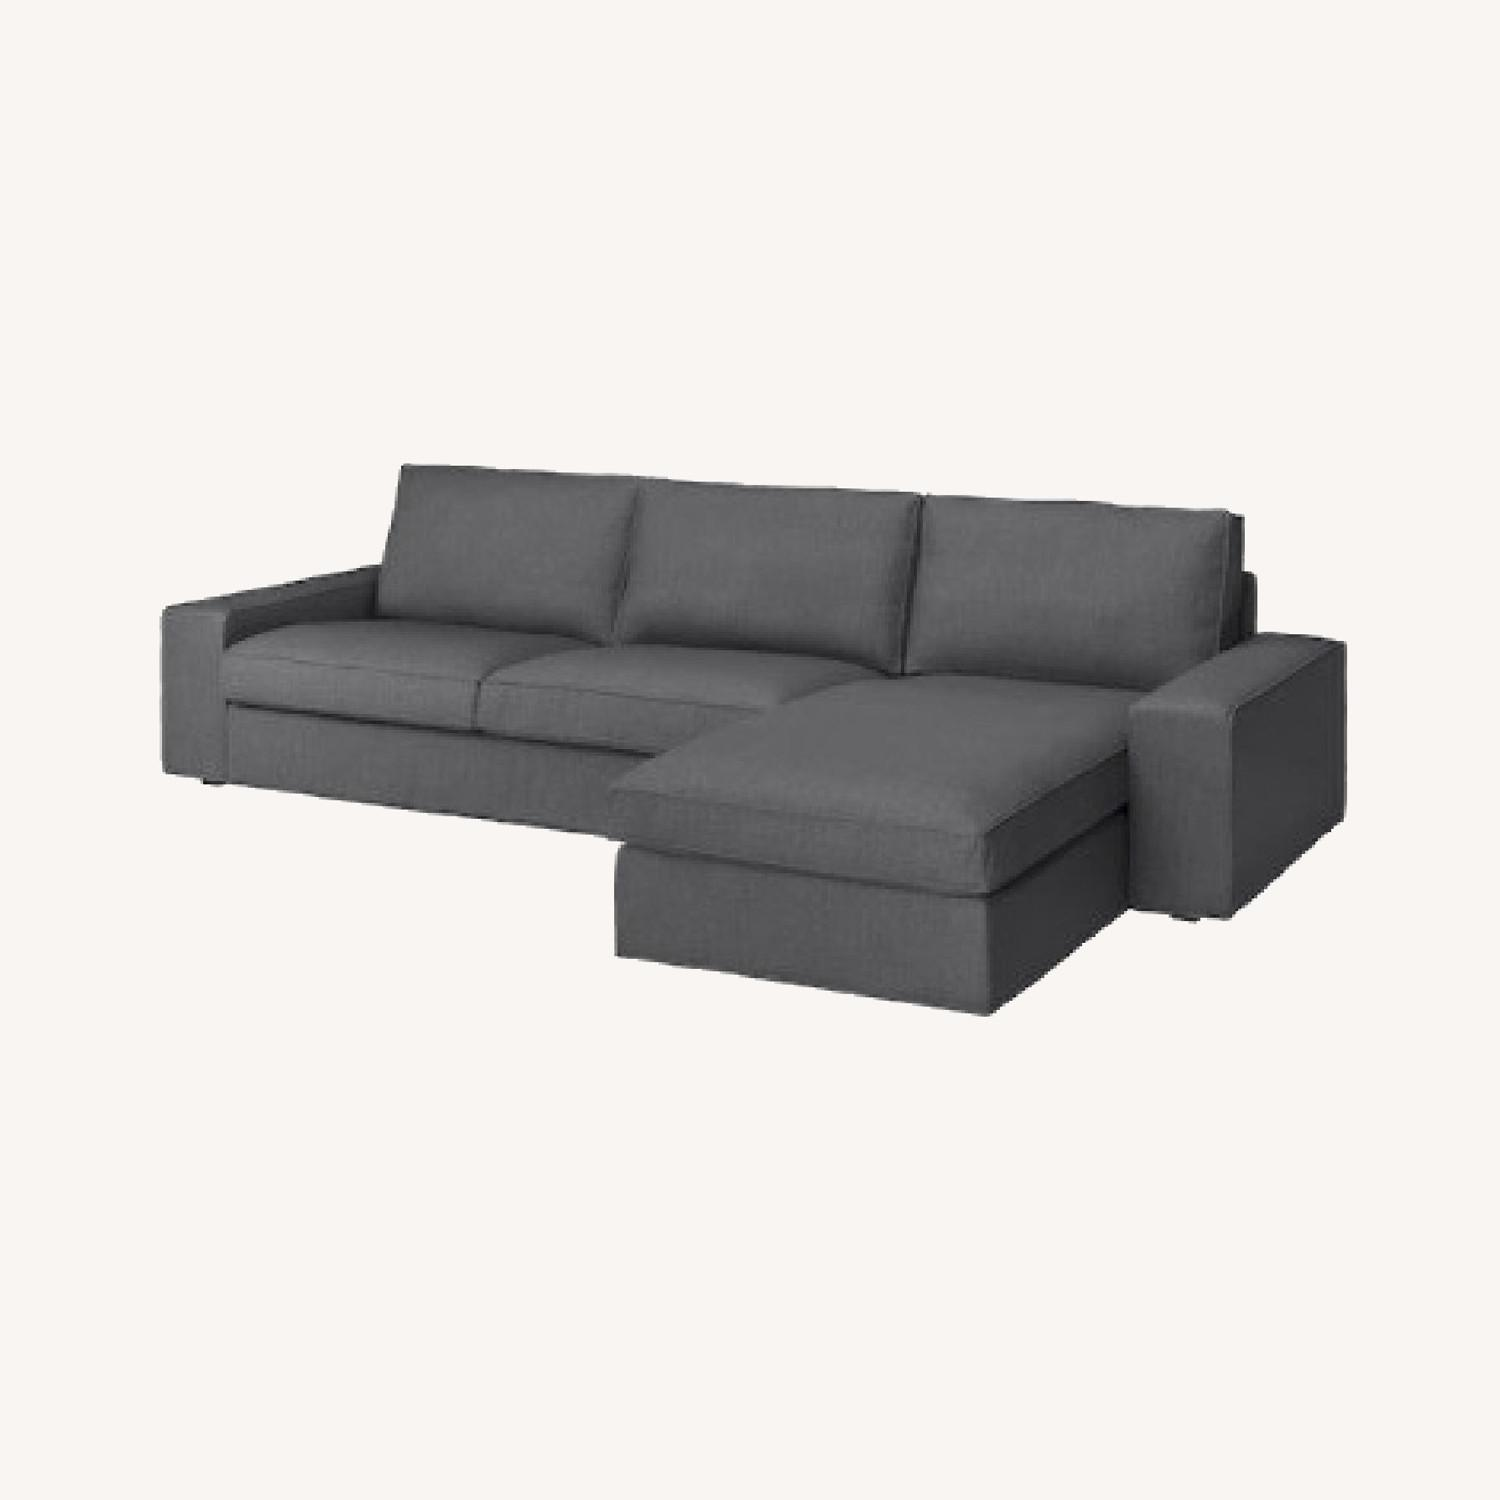 IKEA 4 Person L Shaped Couch - image-0